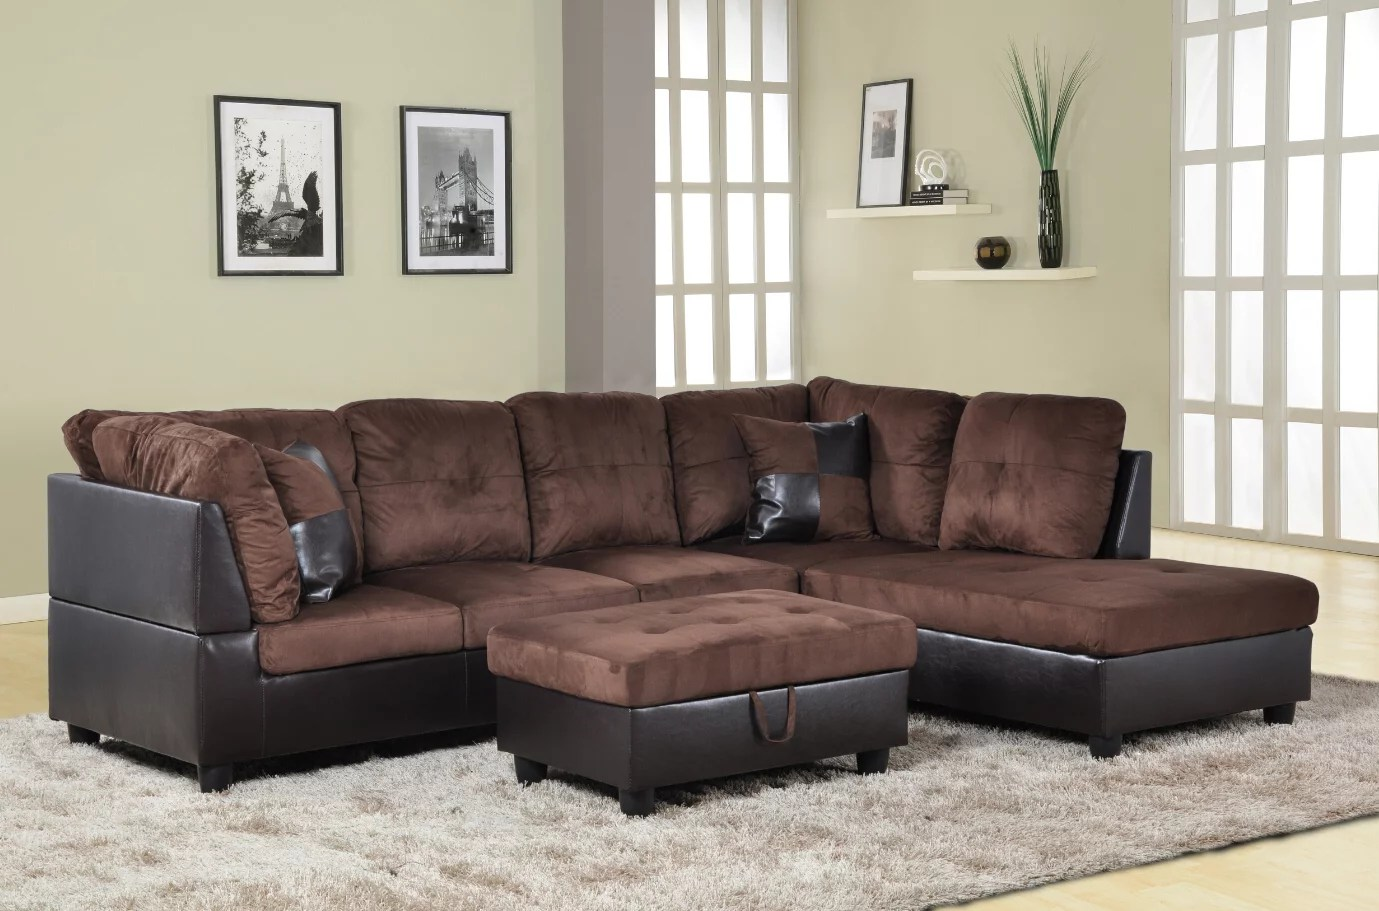 Microfiber Sectional Sofa For U Furnishing Charming Chocolate Microfiber Sectional Sofa Right Facing Chaise 74 5